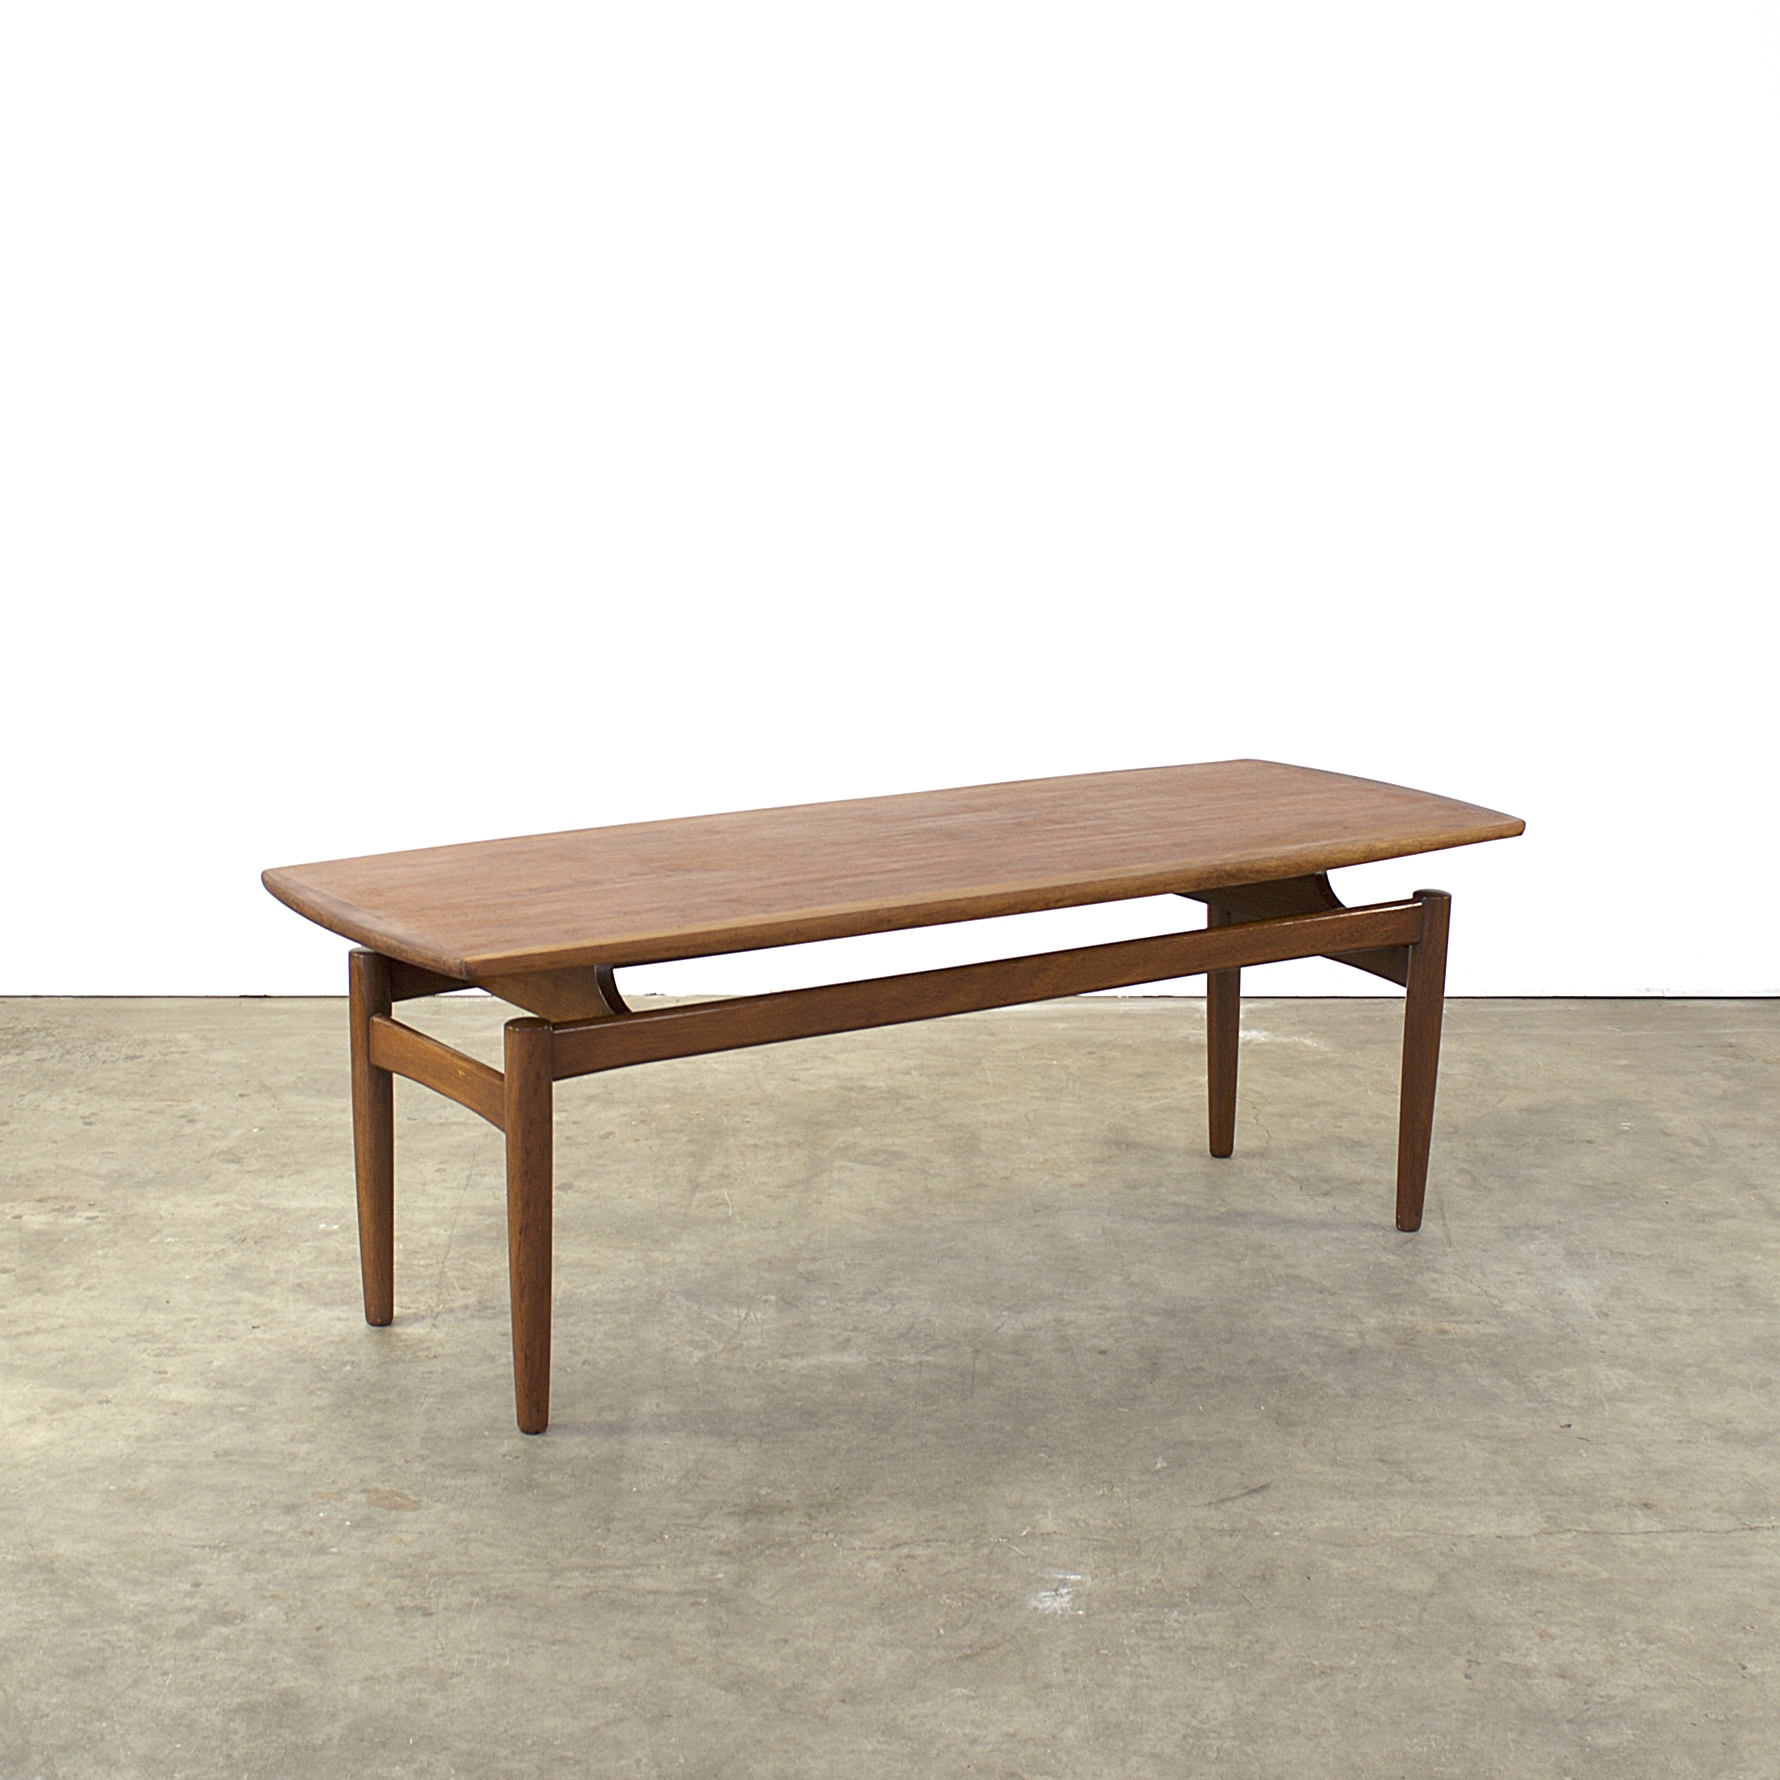 60 s coffee table scandinavian design barbmama for 60s coffee table